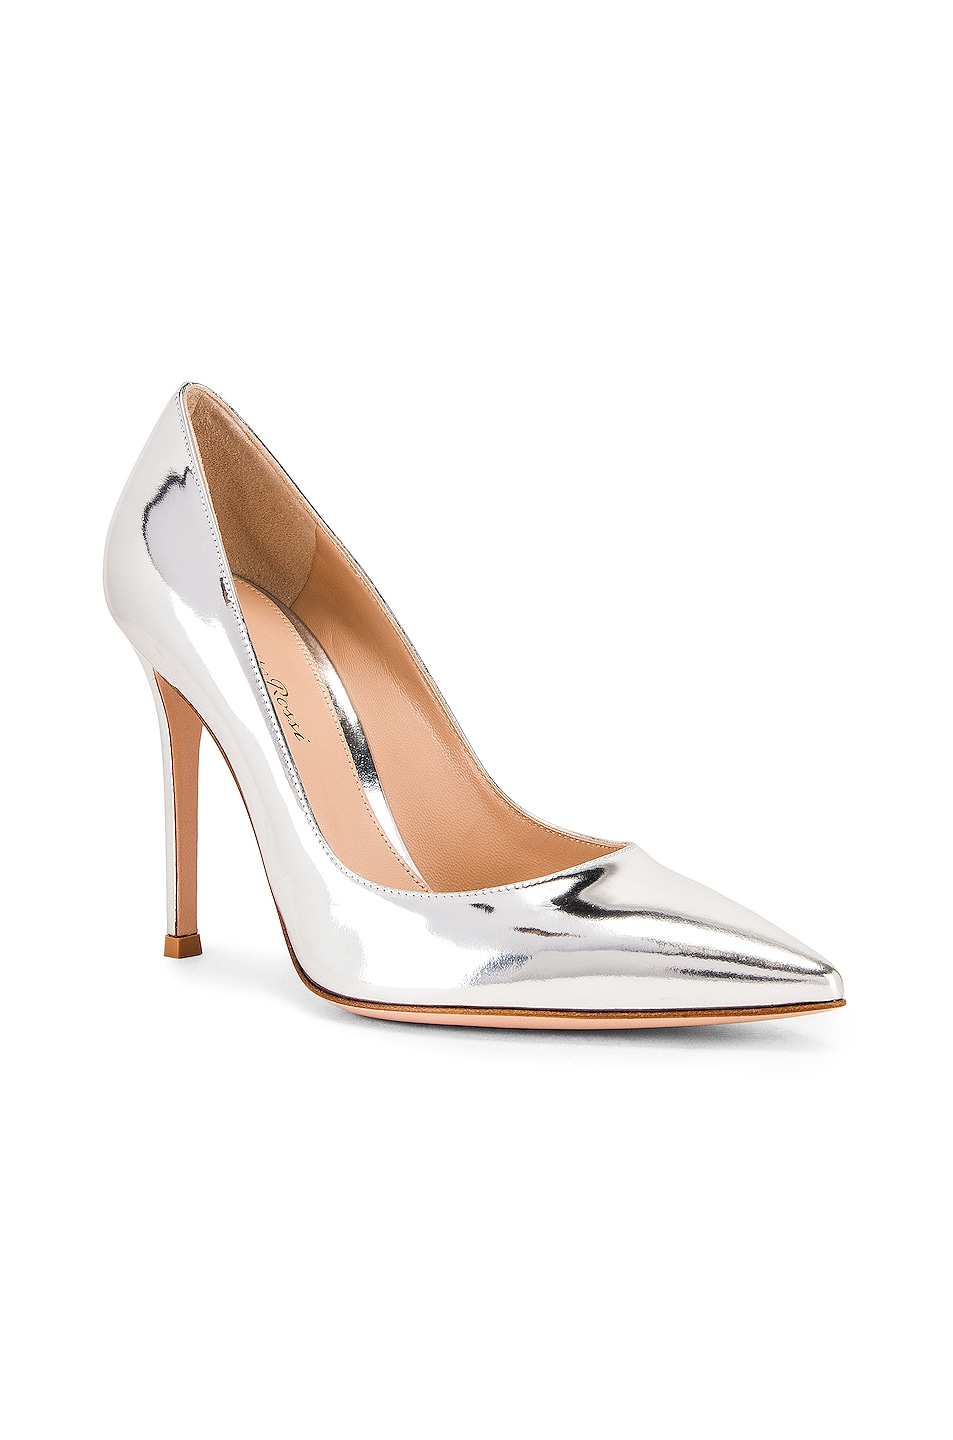 Image 2 of Gianvito Rossi Metal GIanvito Heels in Silver